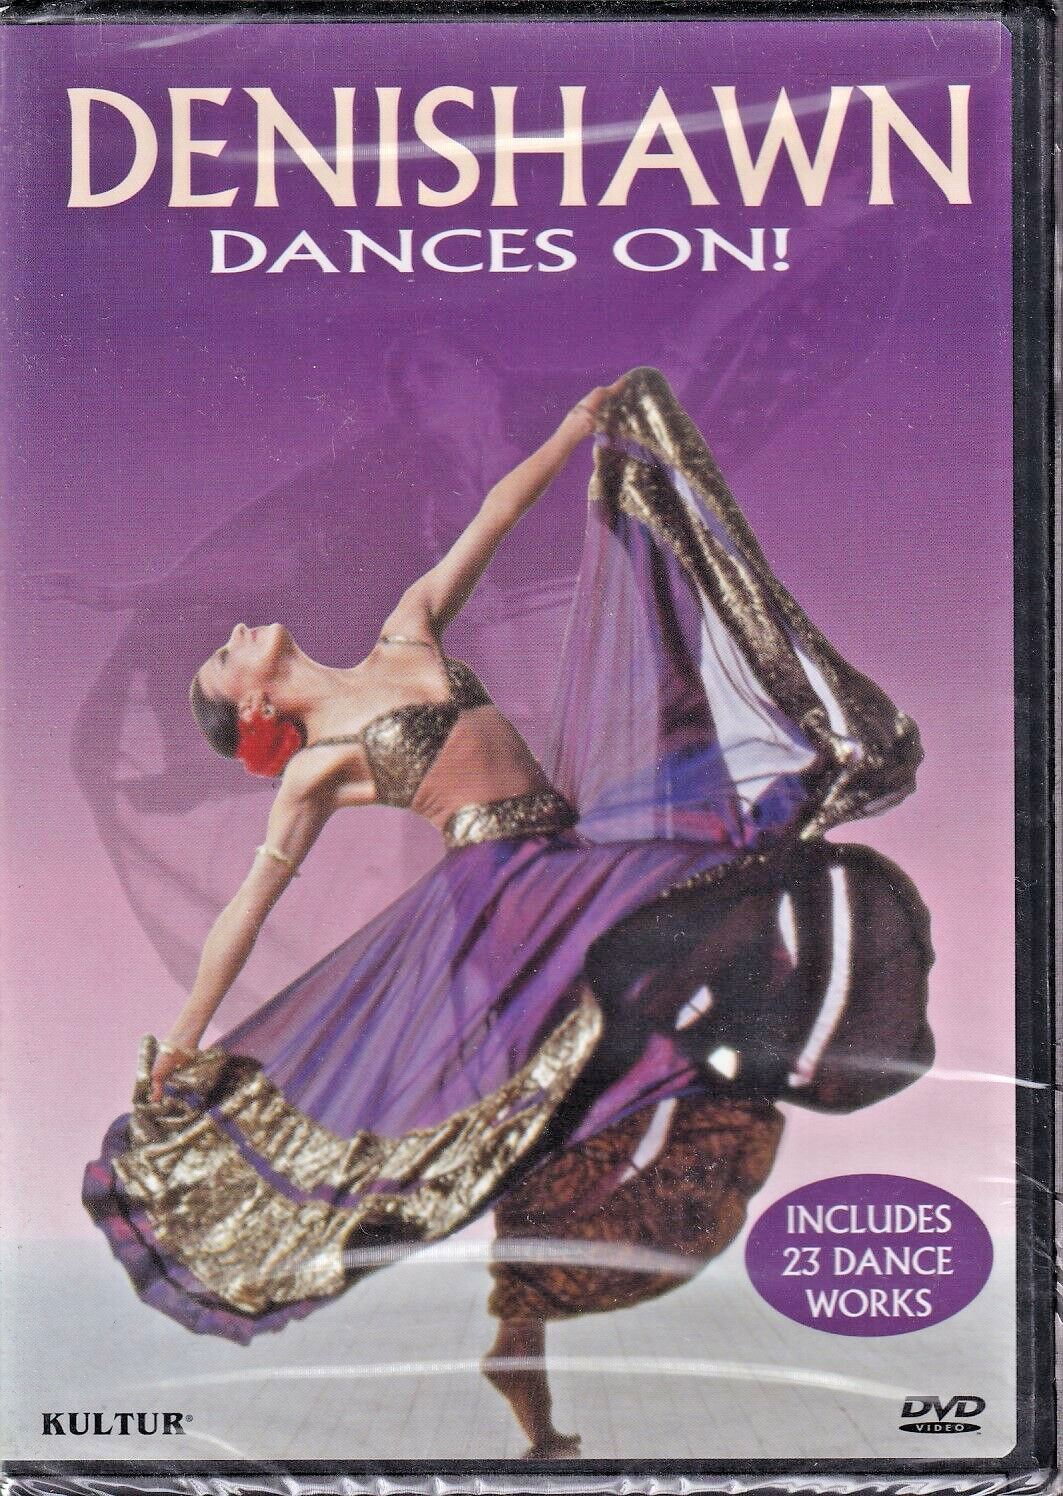 denishawn dances on dvd 2006 p